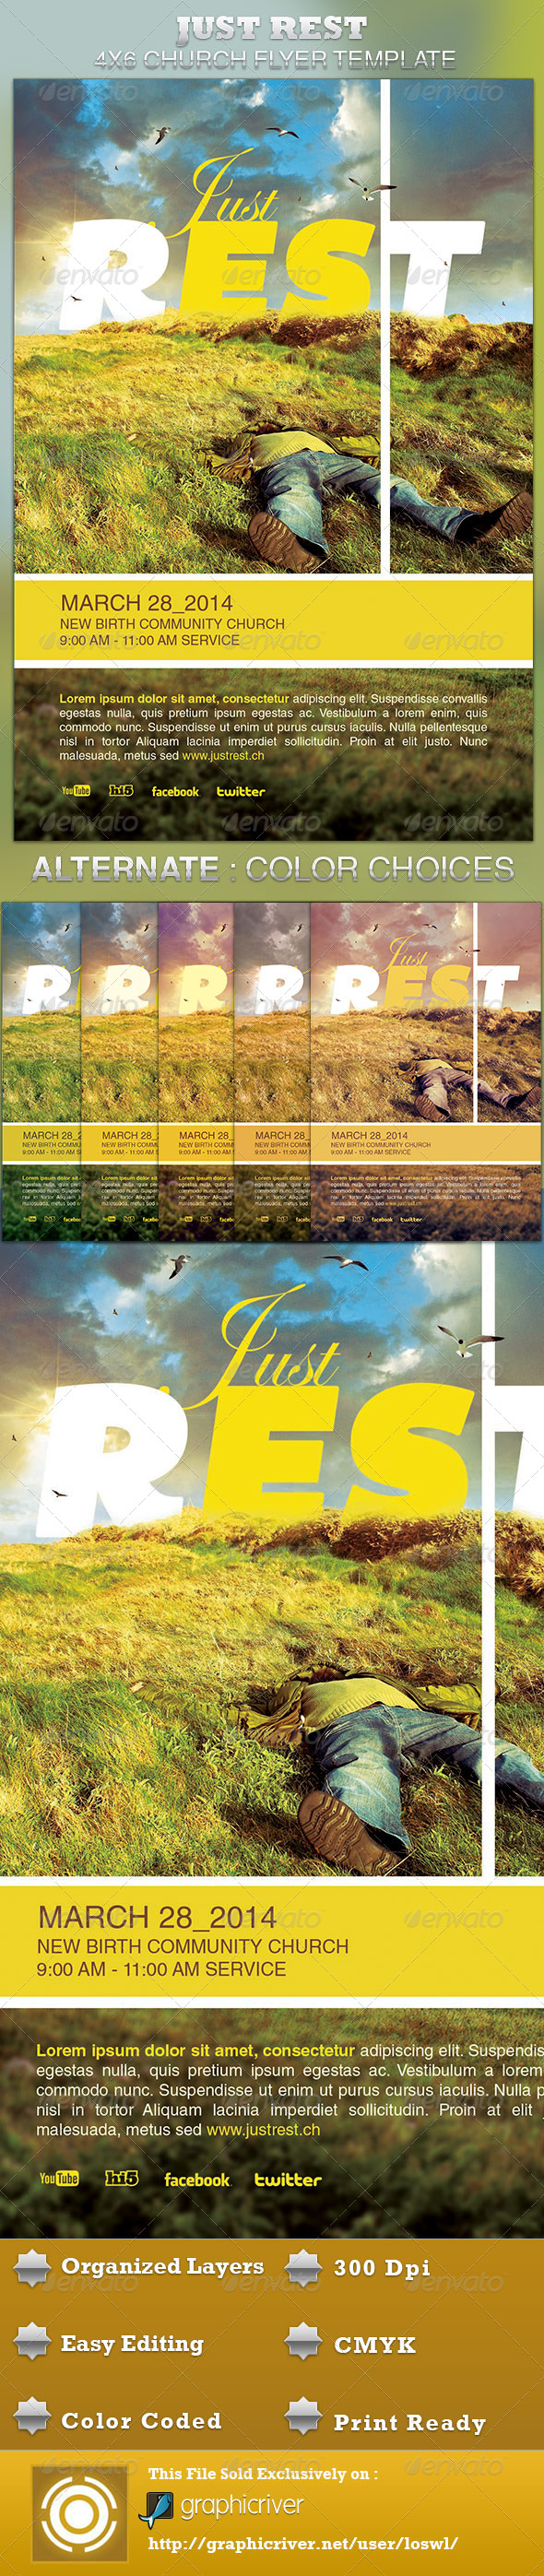 Just Rest Church Flyer Template - Church Flyers